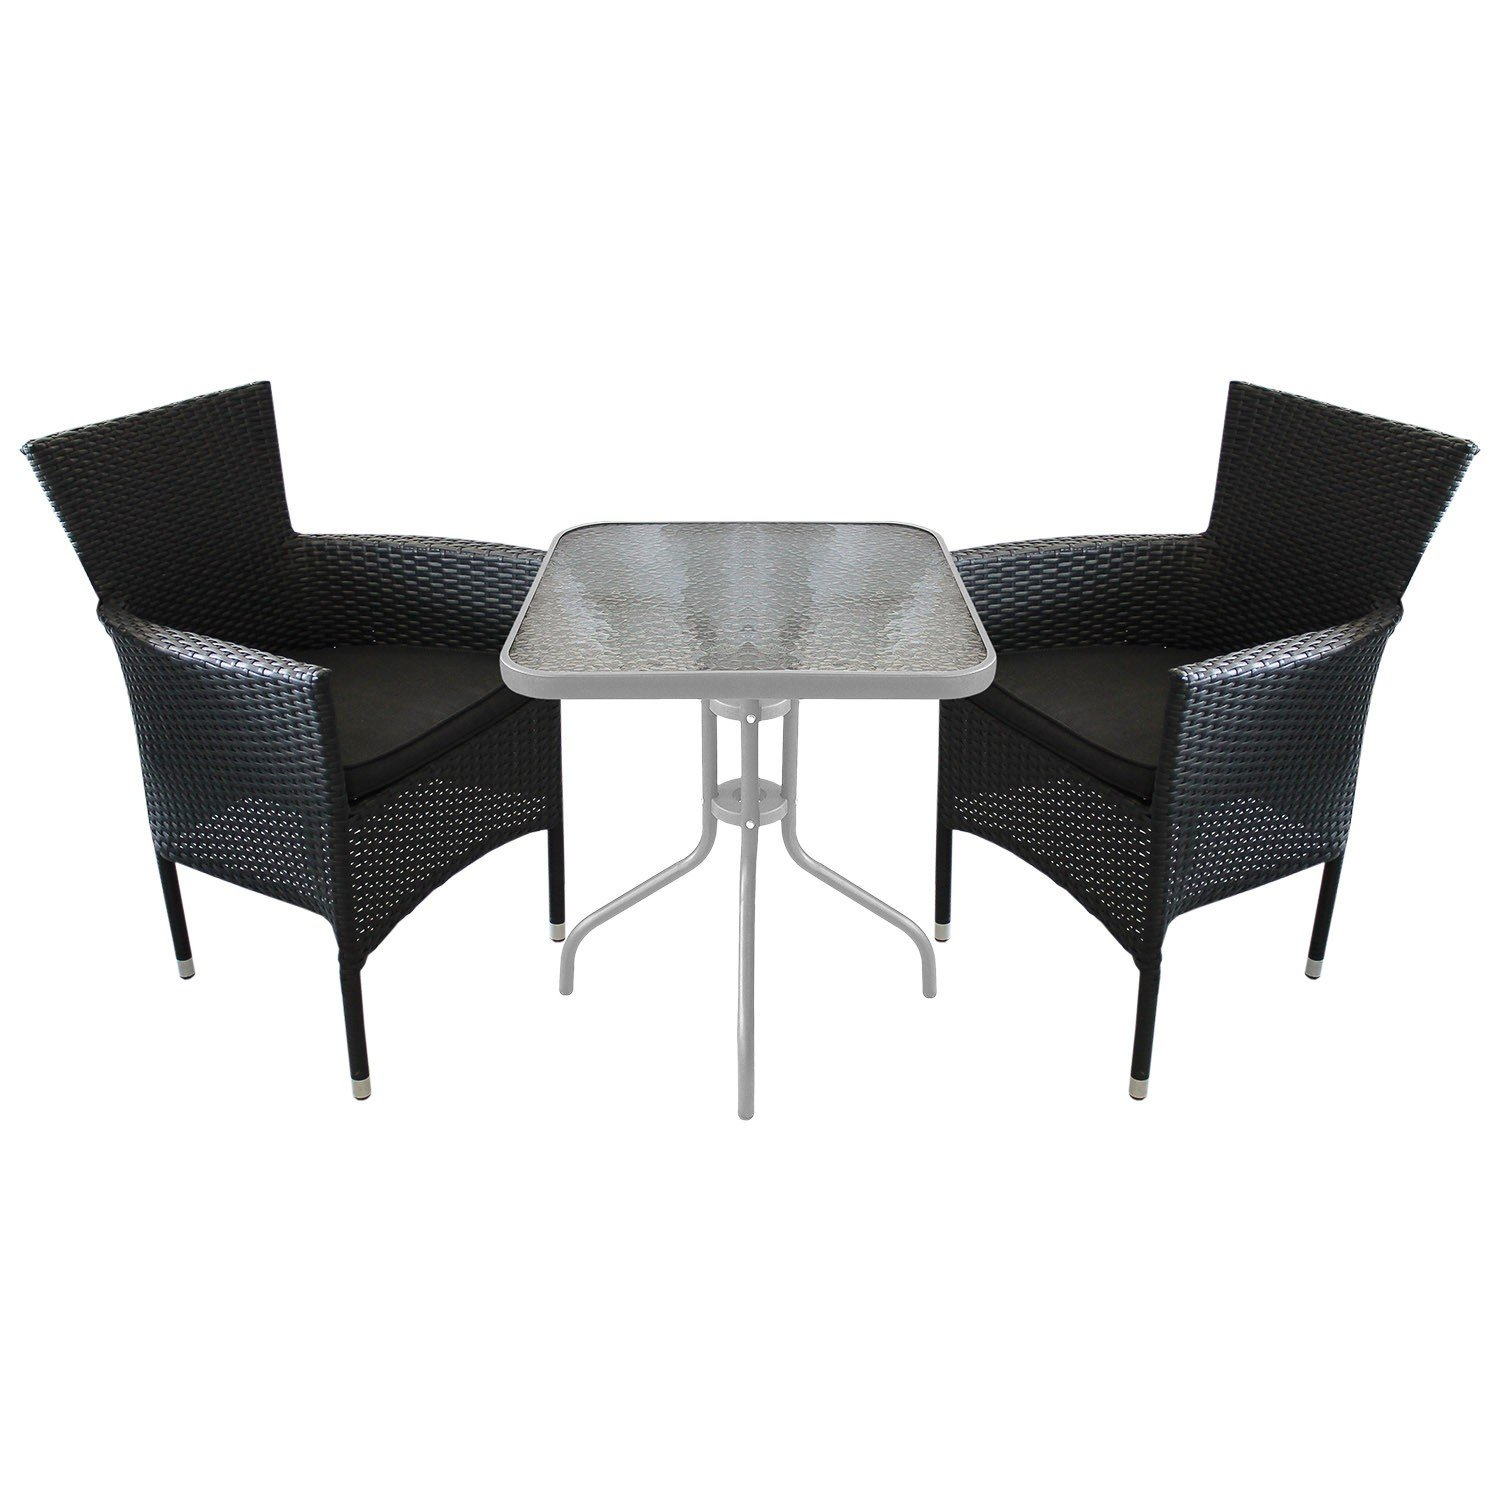 3tlg balkonm bel bistro set glastisch 60x60cm 2x poly rattan stapelsessel inkl sitzkissen. Black Bedroom Furniture Sets. Home Design Ideas